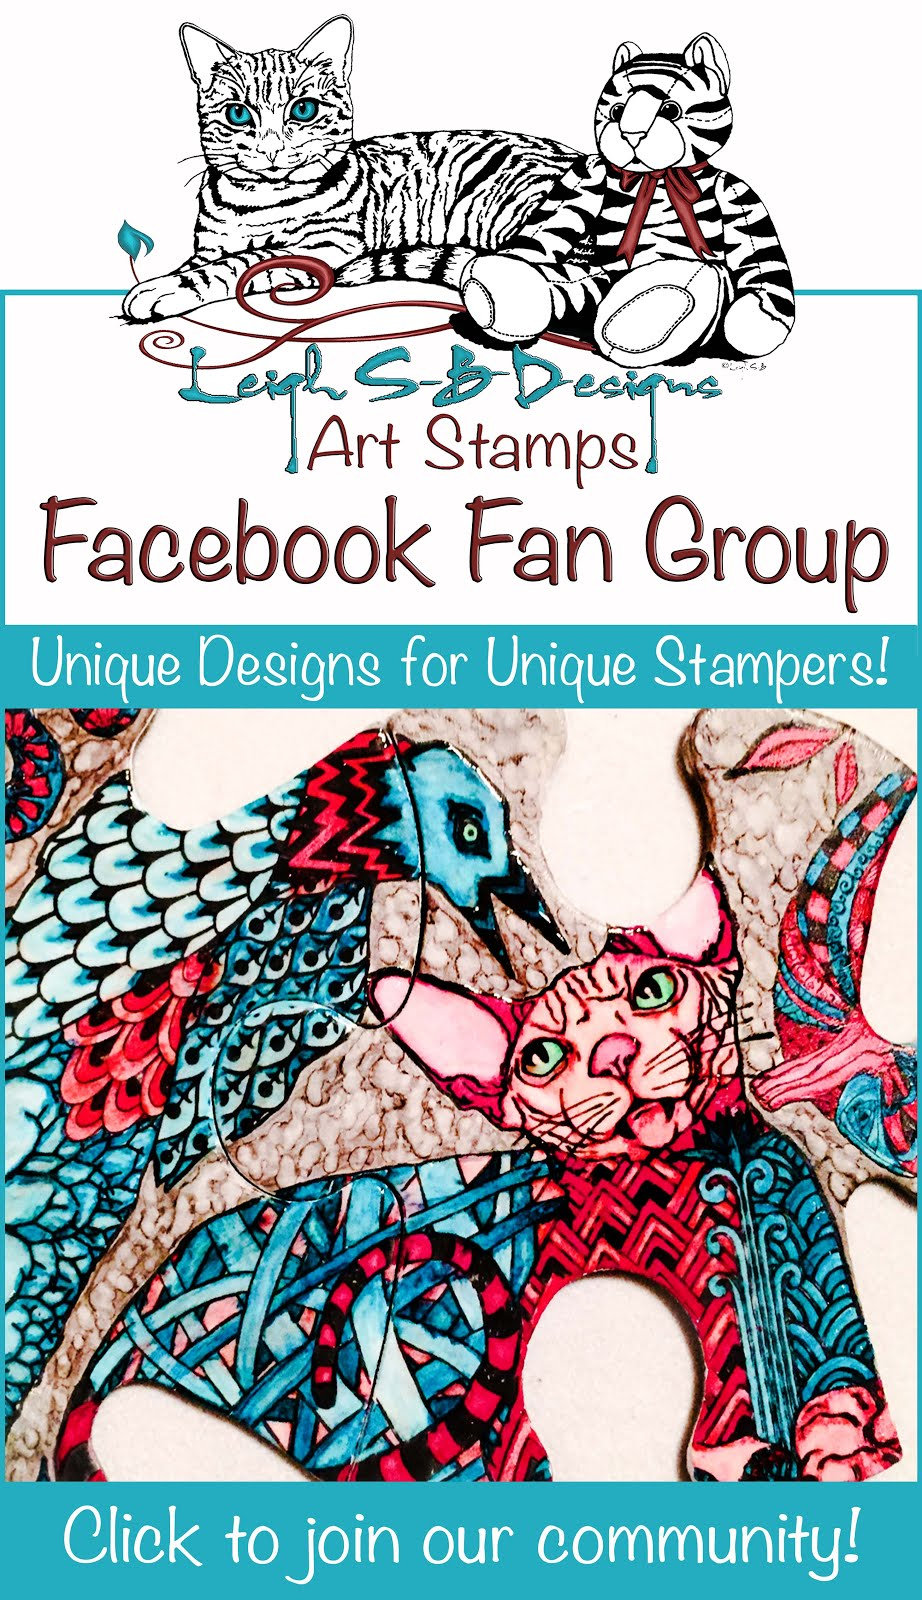 Join our FACEBOOK FAN GROUP